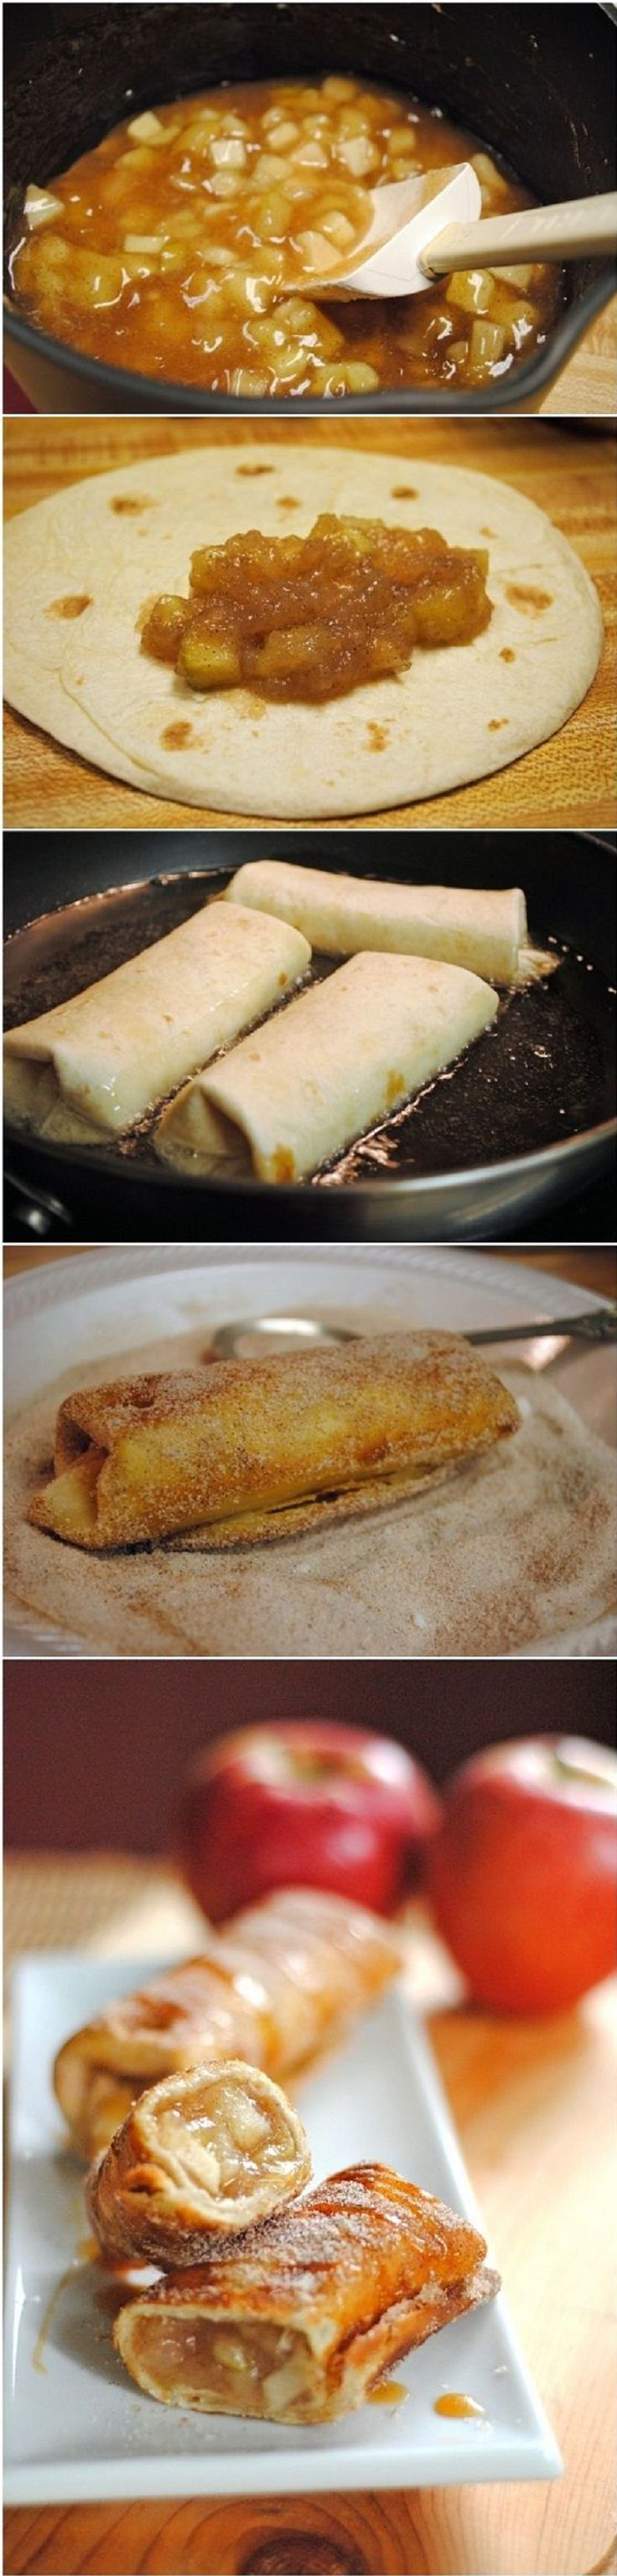 Cinnamon Apple Chimichangas